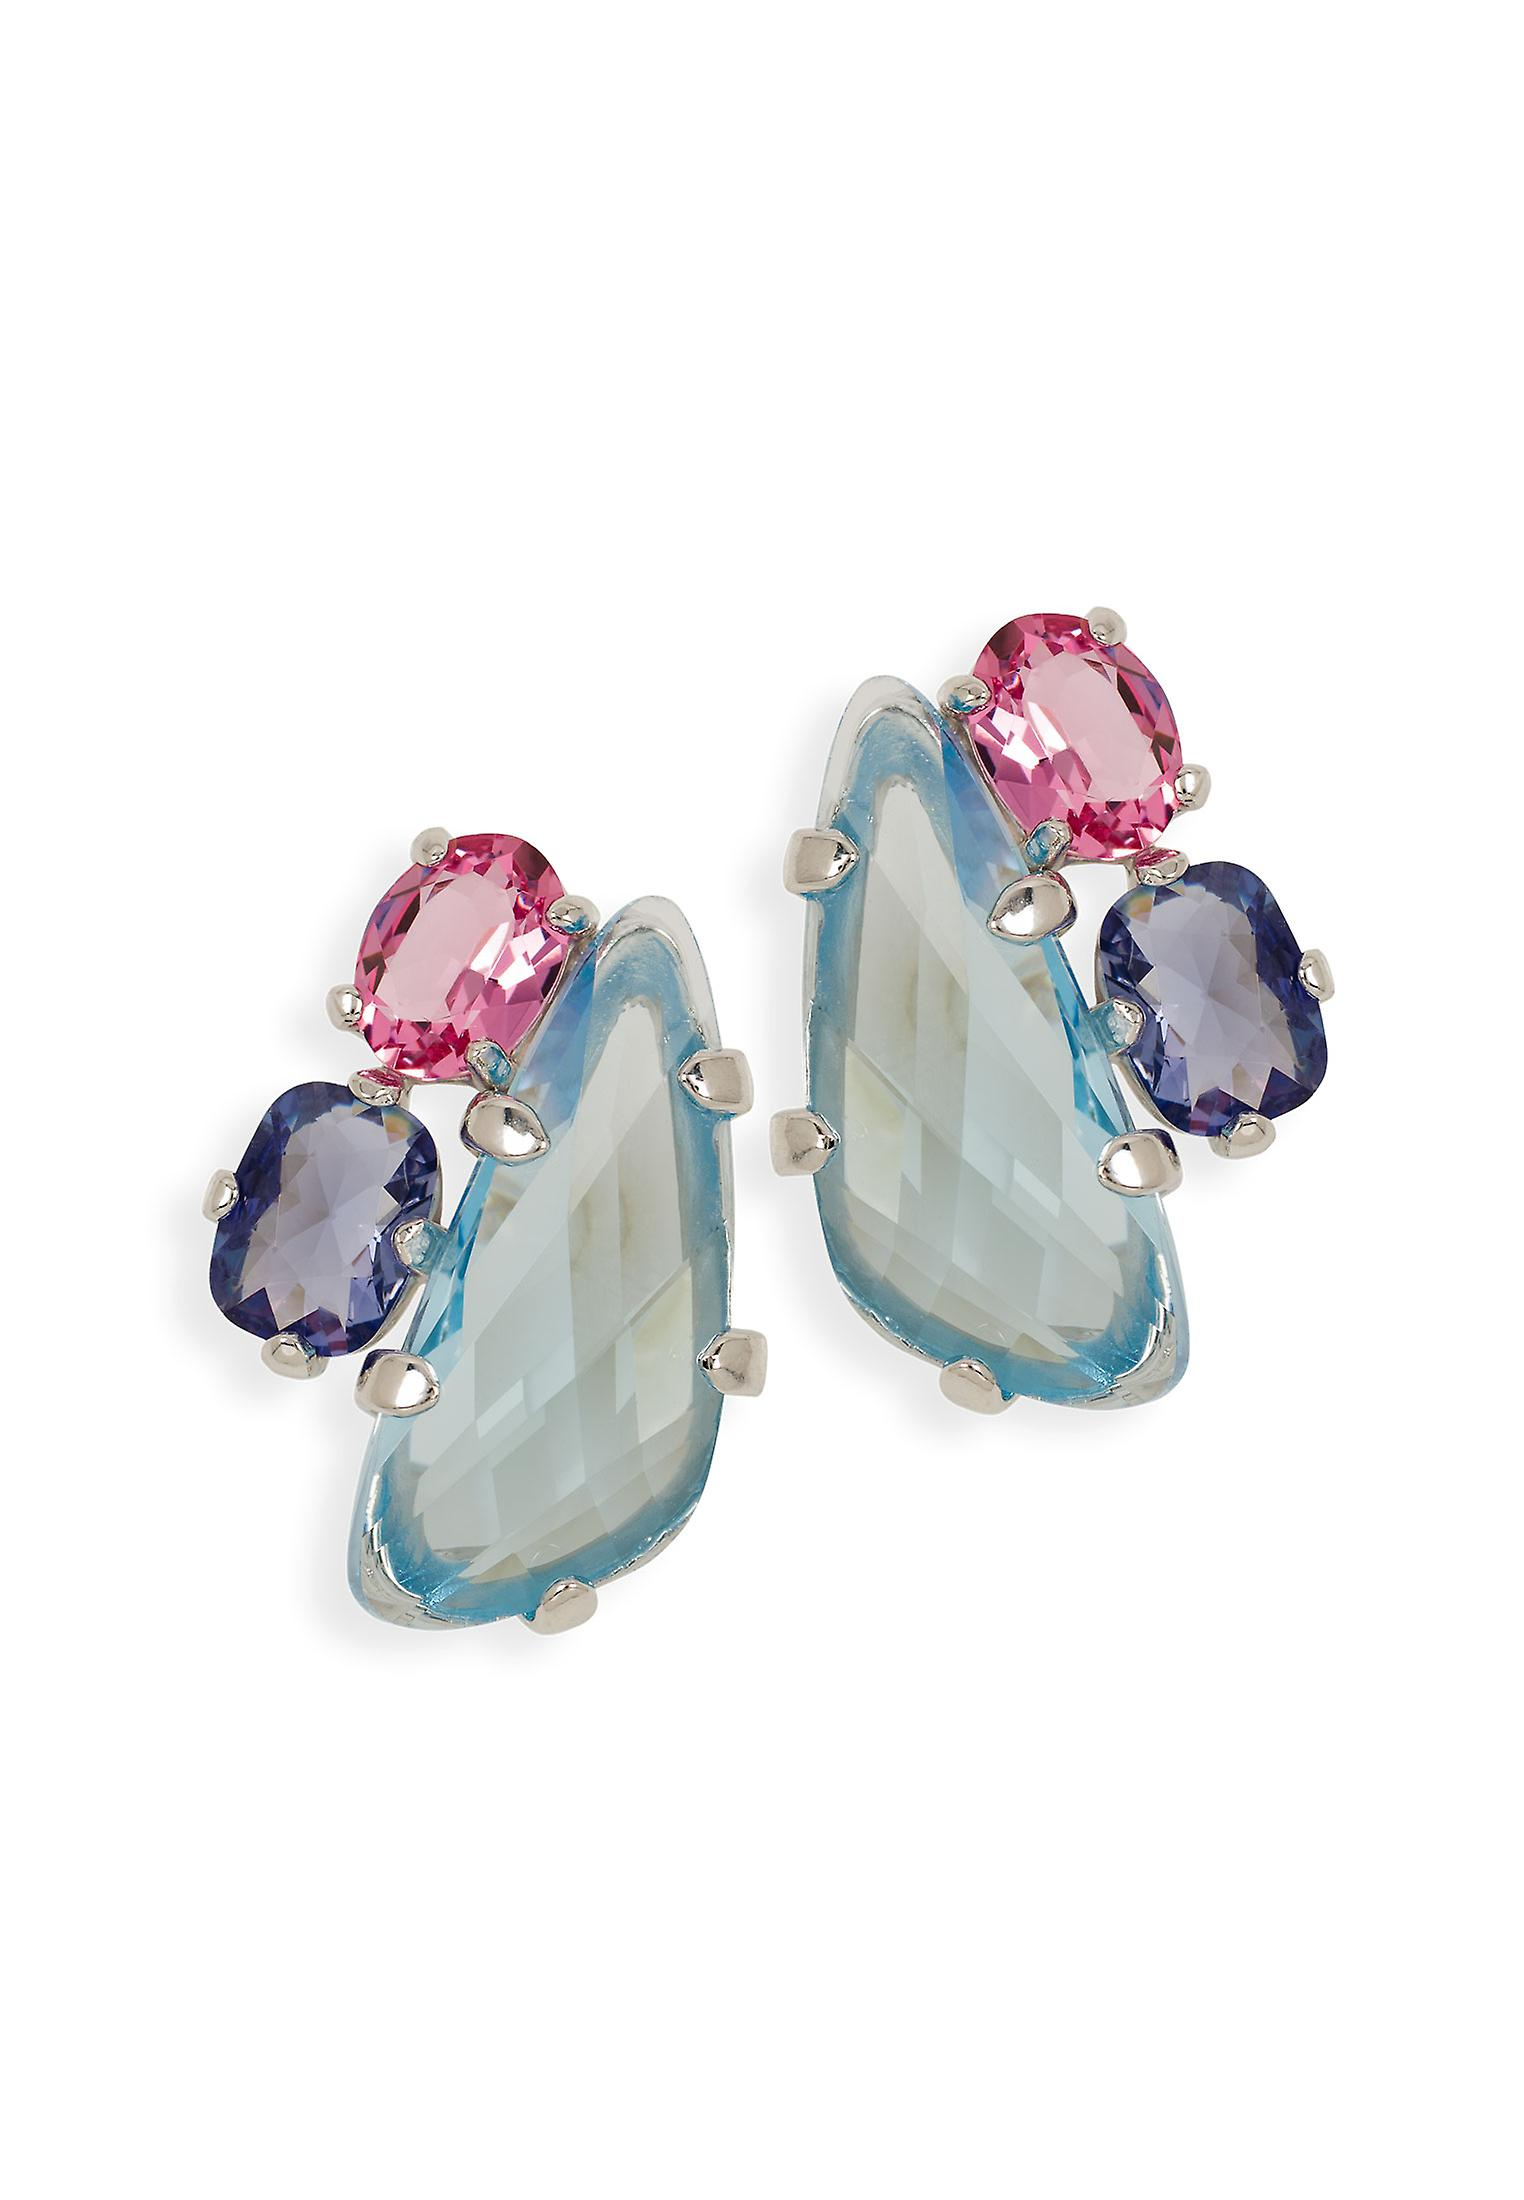 Multicolor earrings with crystals from Swarovski 504